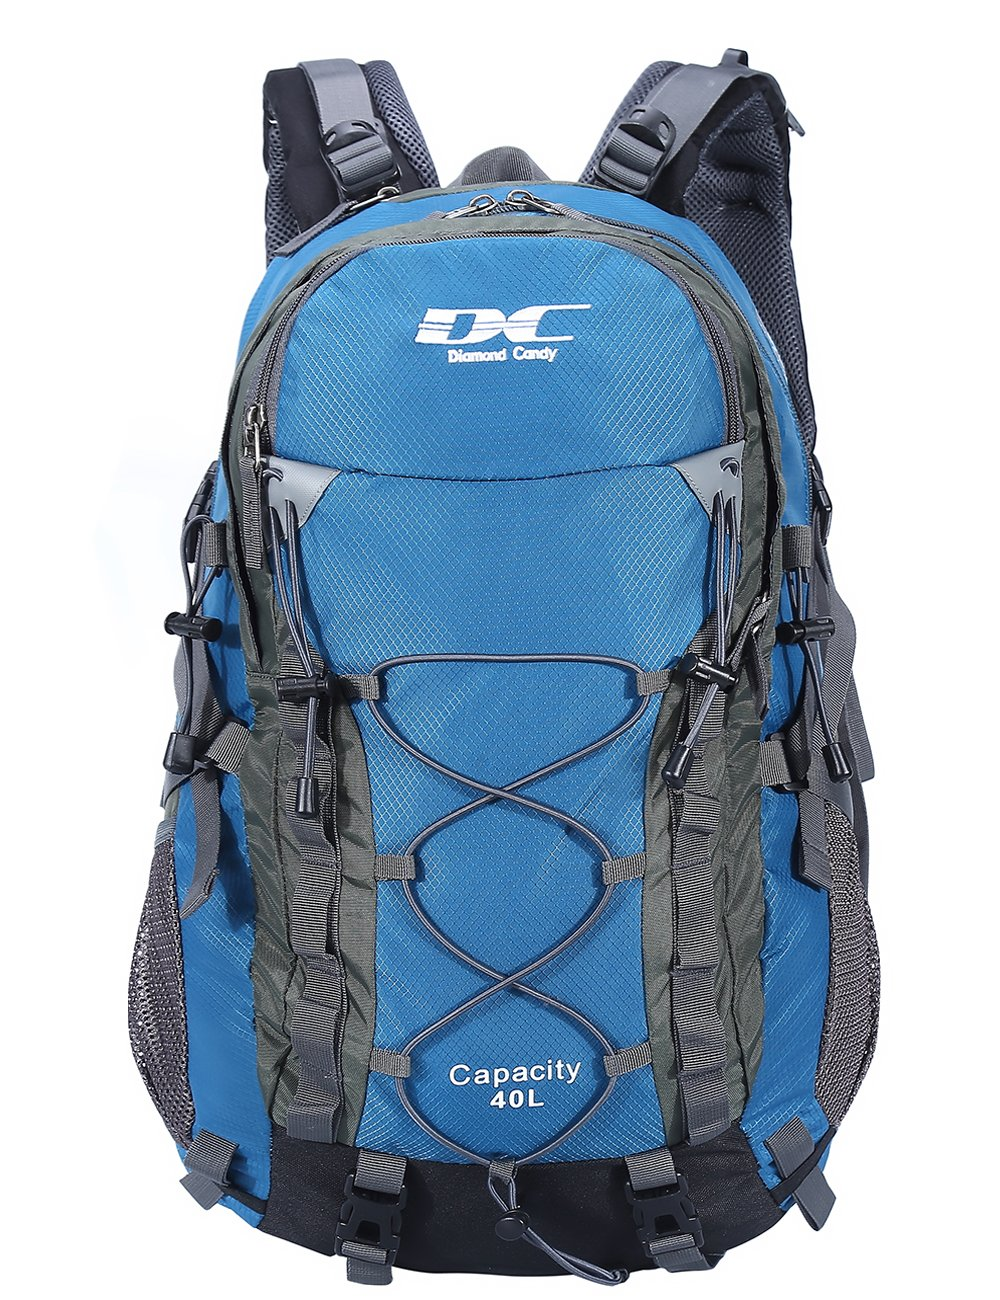 Diamond Candy Hiking Backpack 40L Waterproof Outdoor Lightweight Travel Backpacks for Men and Women with Rain Cover, Bag for Mountaineering Camping Climbing Cycling Fishing (Blue)